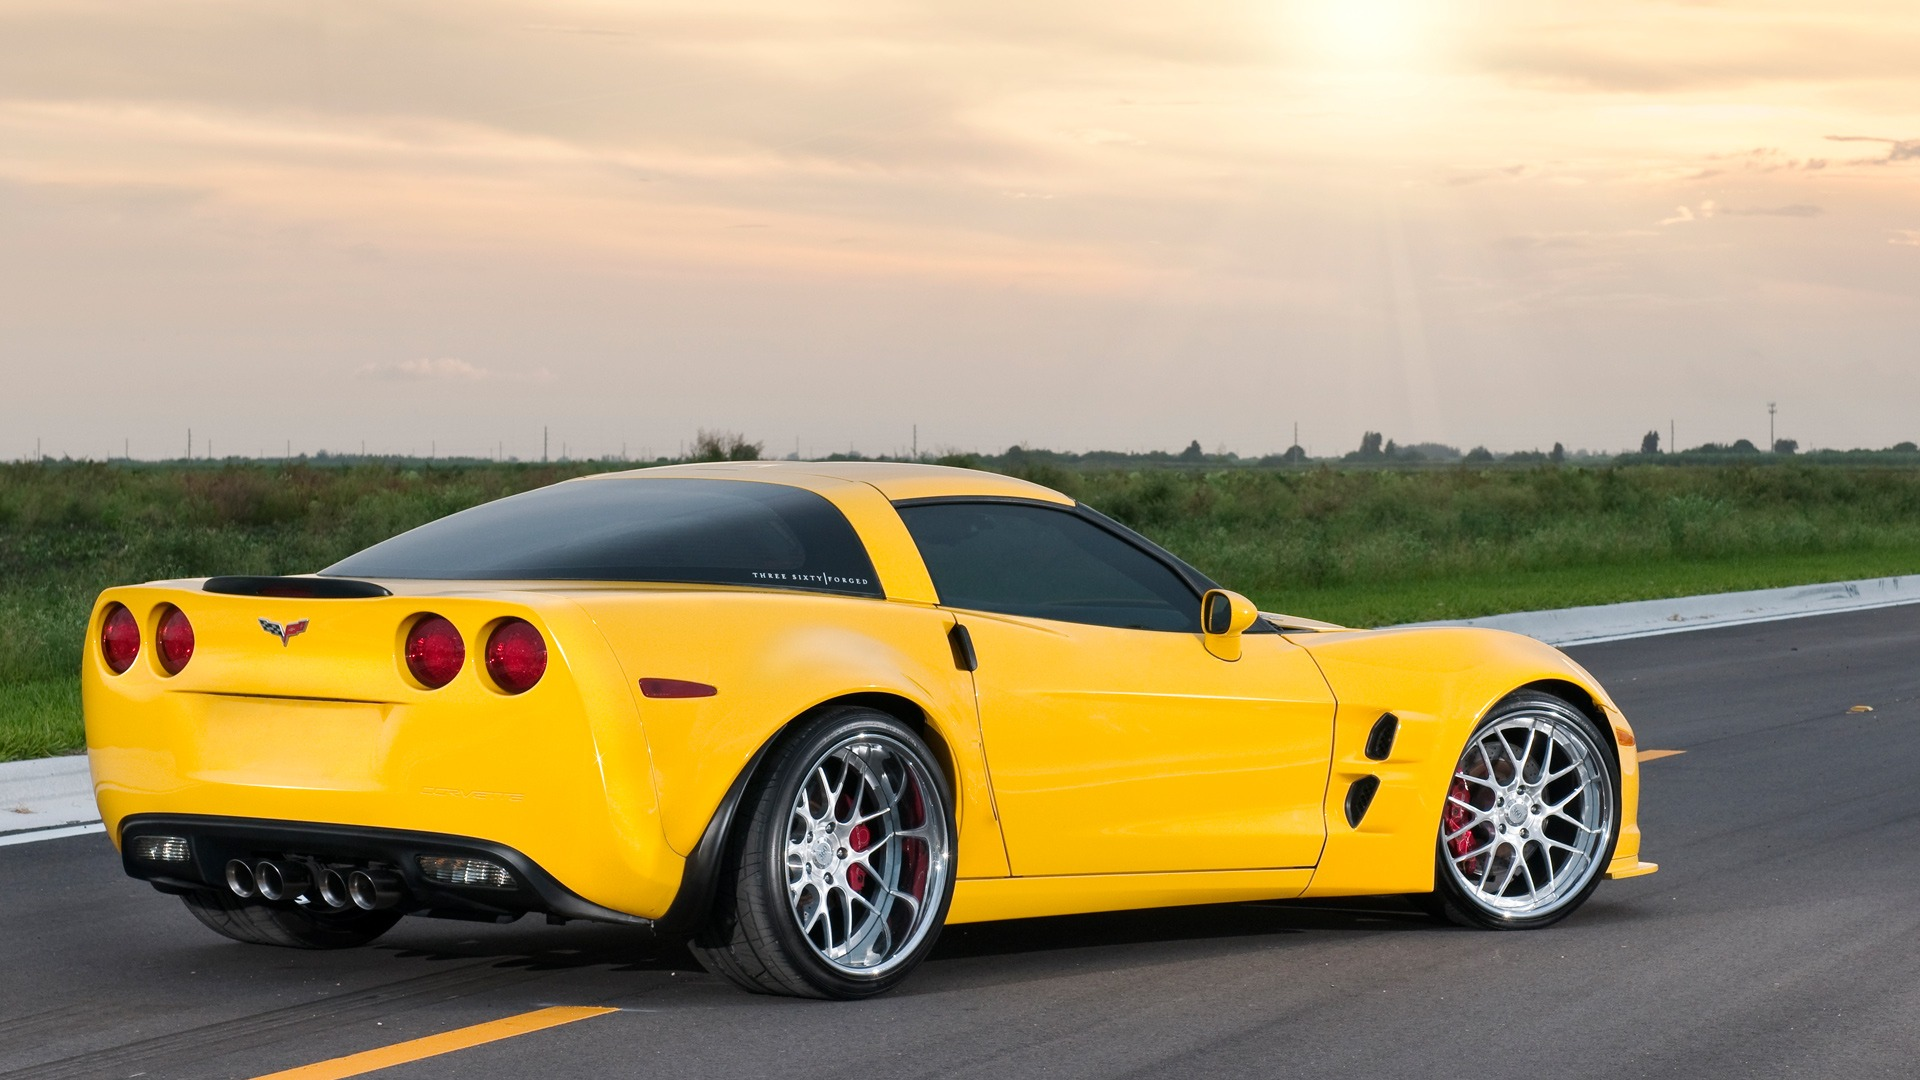 Corvette HD Wallpapers 1080p - WallpaperSafari | 1920 x 1080 jpeg 473kB